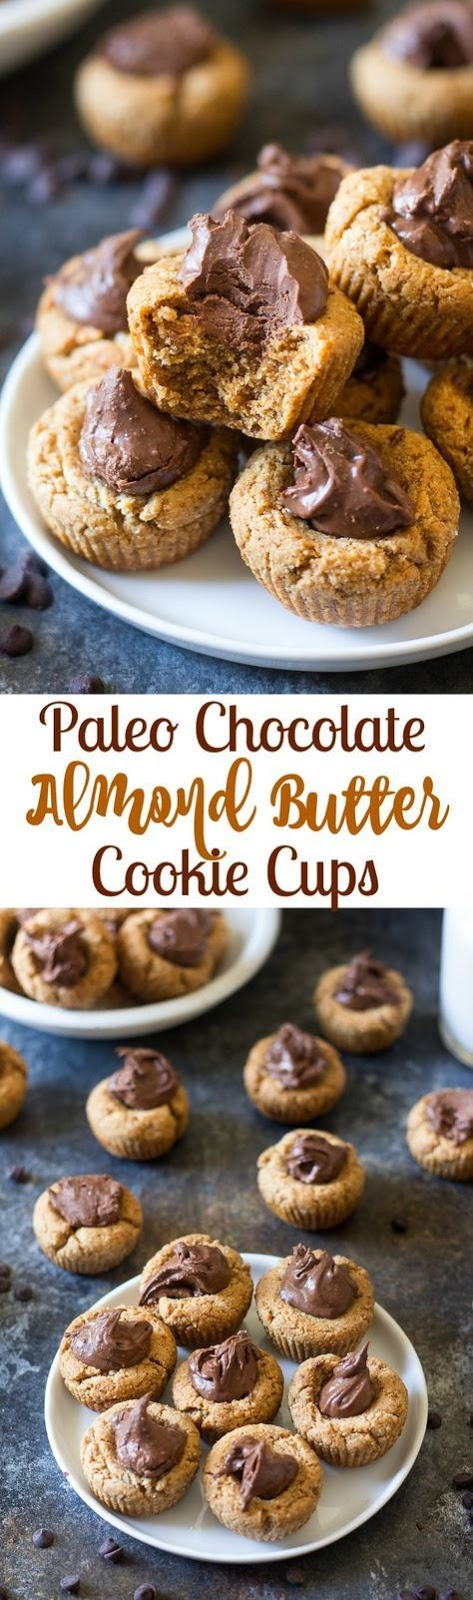 Paleo Chocolate Almond Butter Cookie Cups #Paleo #chocolate #Almond #Butter #Cookie #Cups #Besetcookies